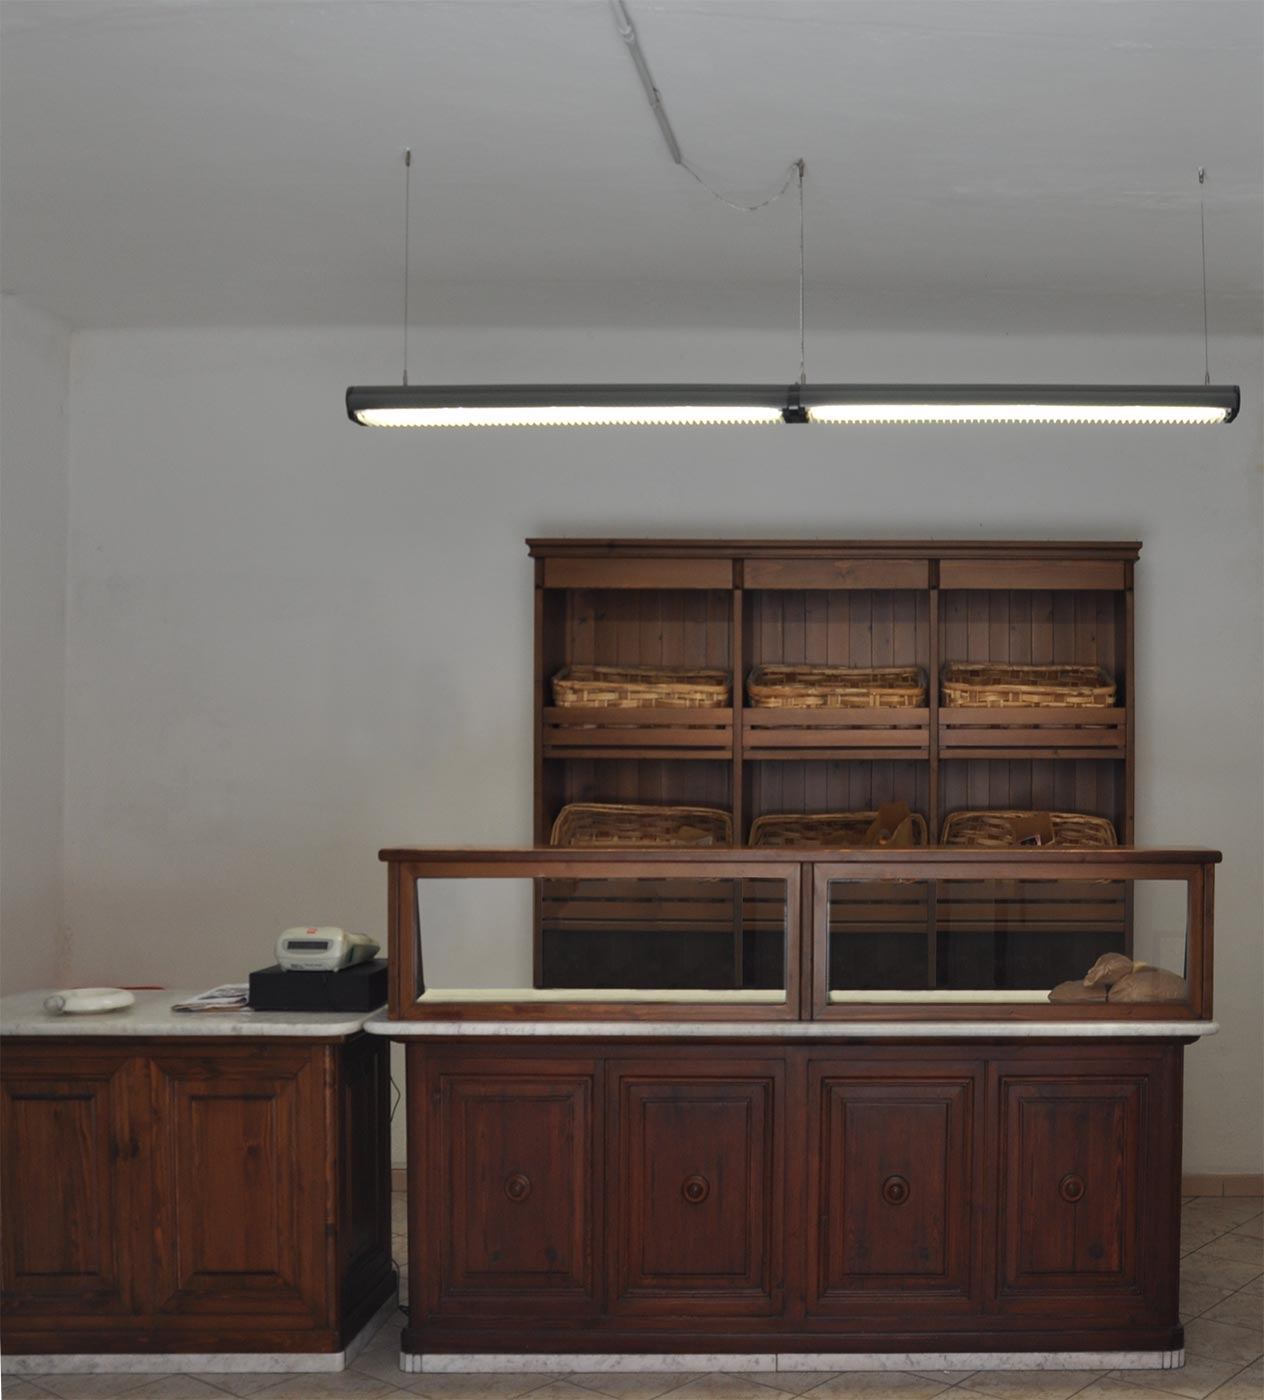 forniture of bakery. 2011